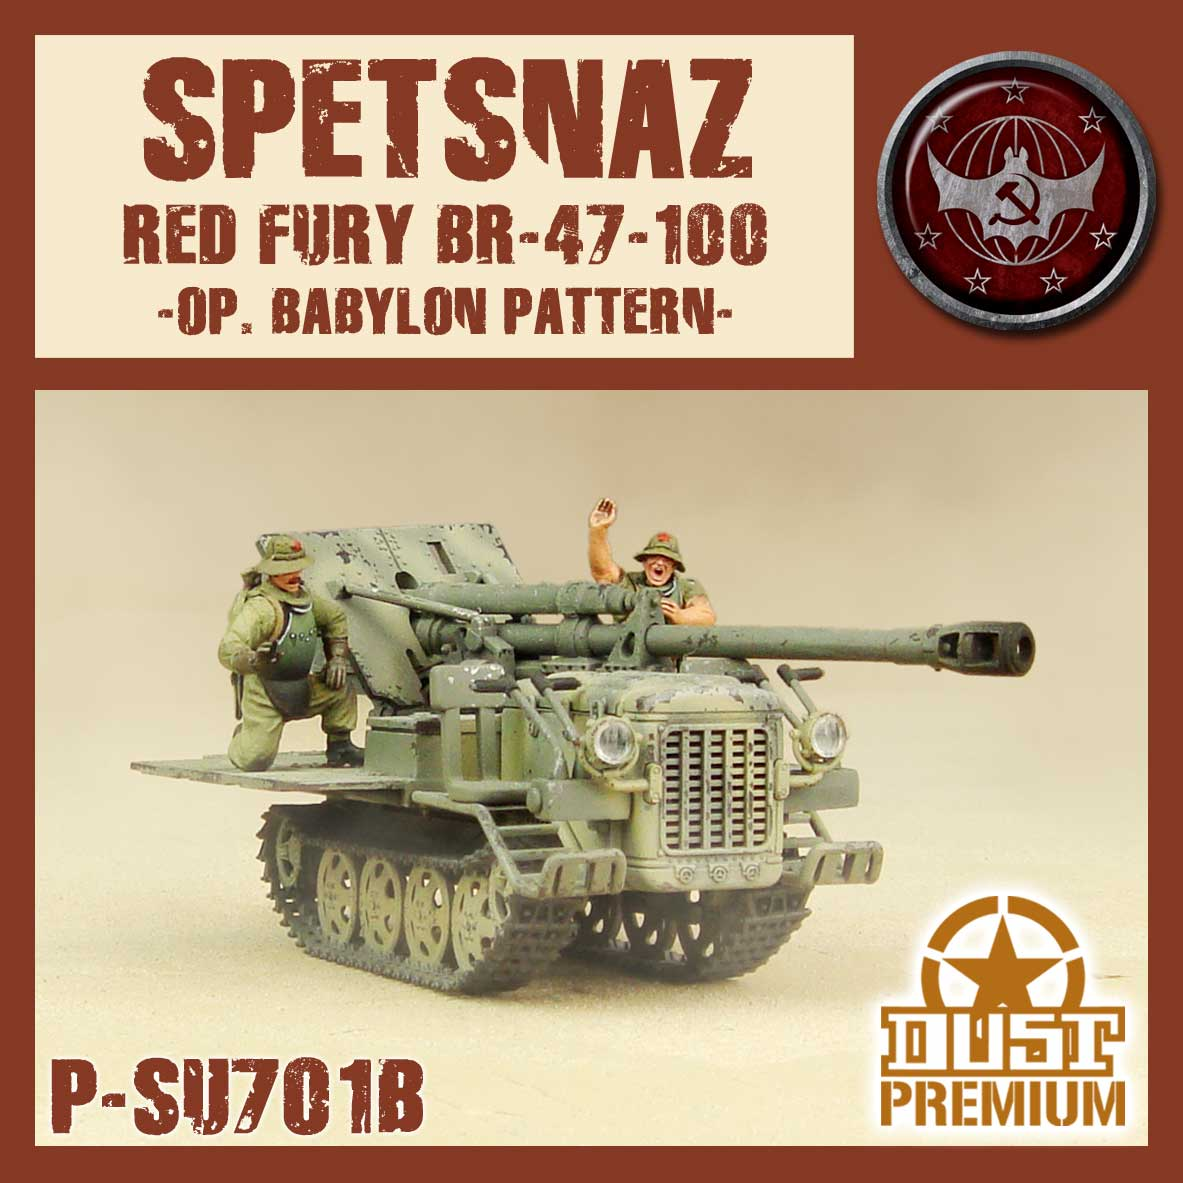 Red Fury Premium Spetsnaz